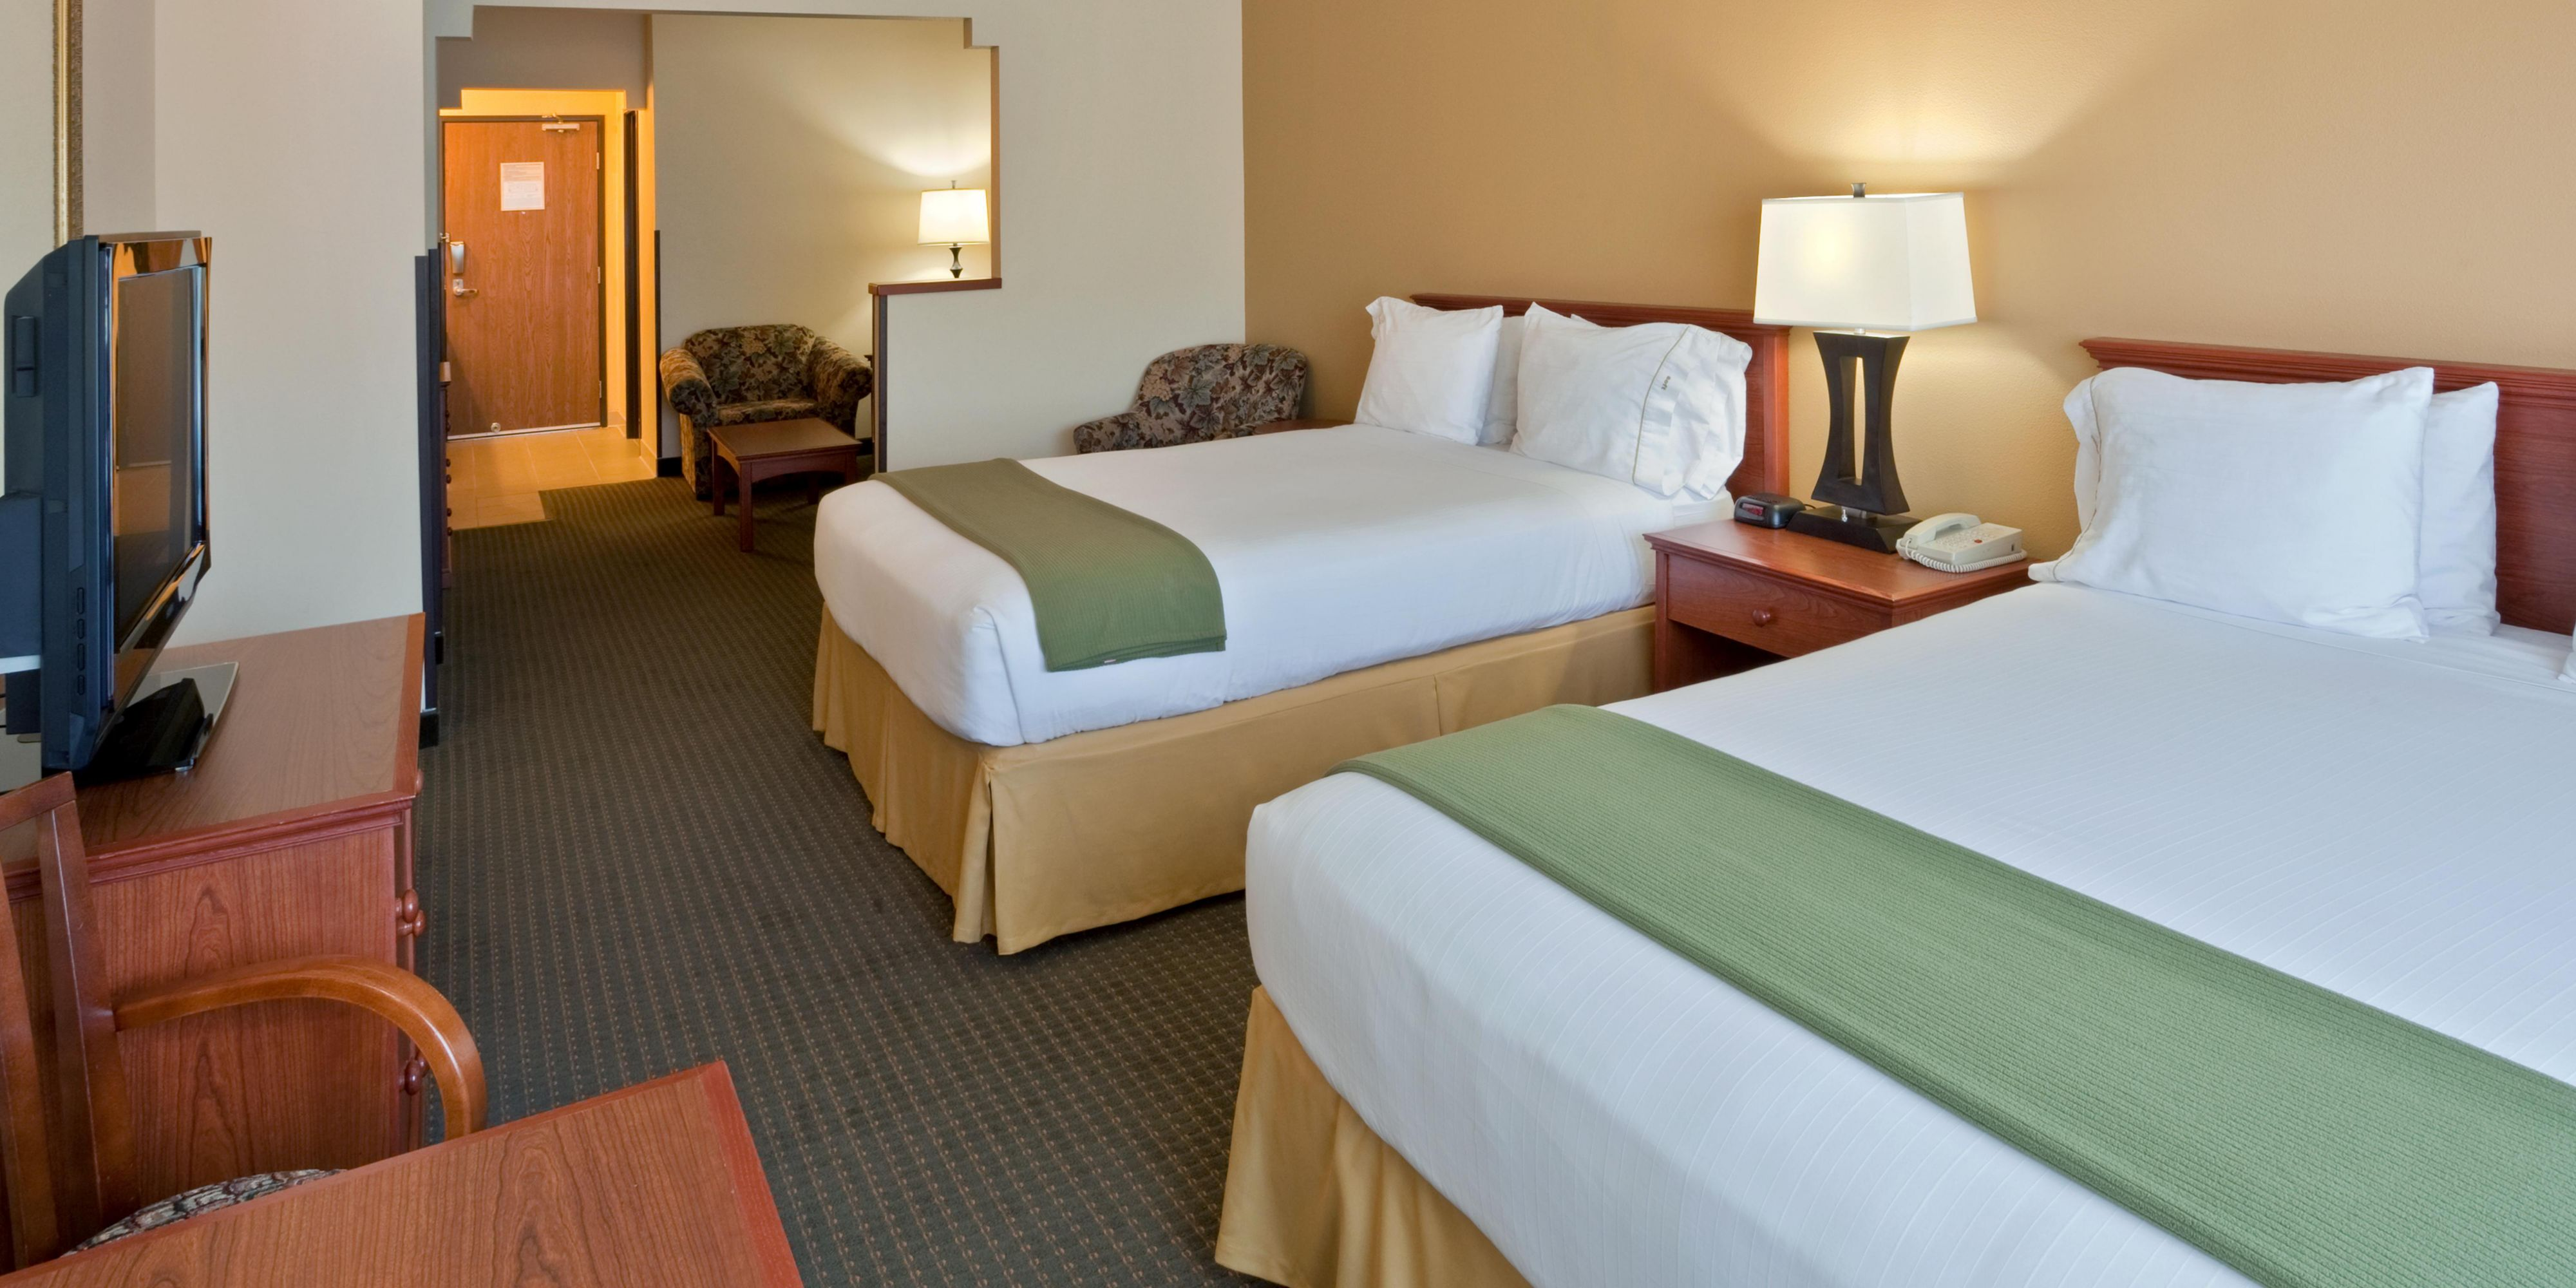 Holiday Inn Express And Suites Ashland 4270410540 2x1